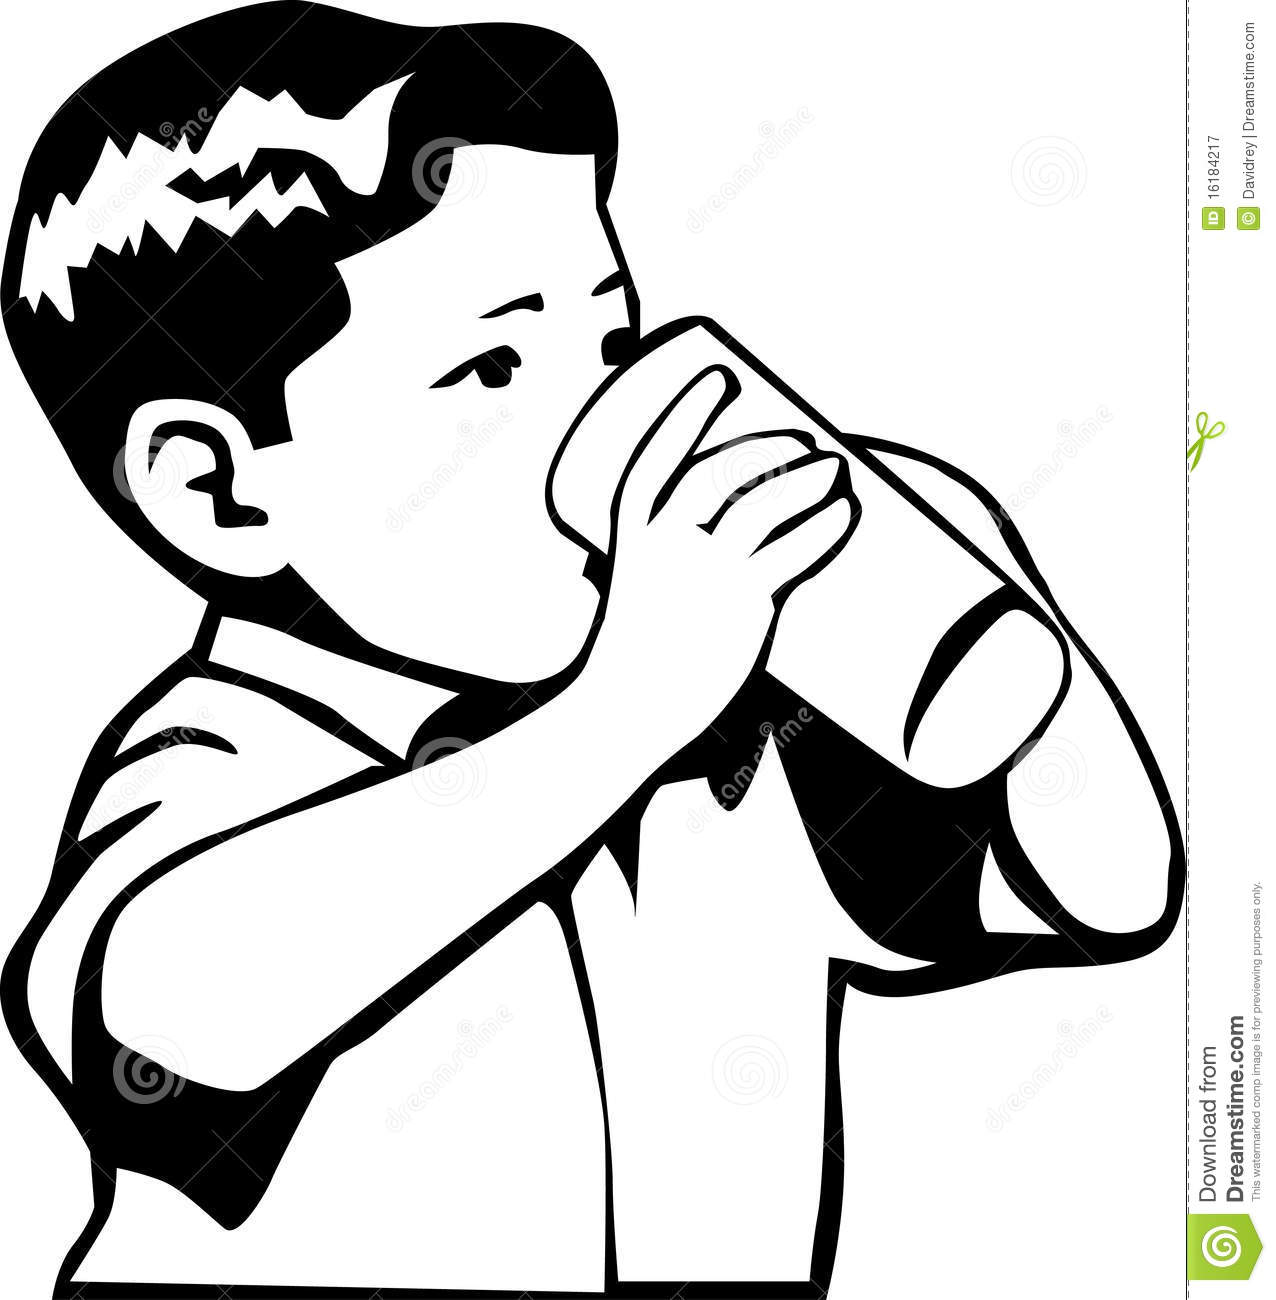 Drink clipart kid drink Cliparts clipart Drinking drinking Milk